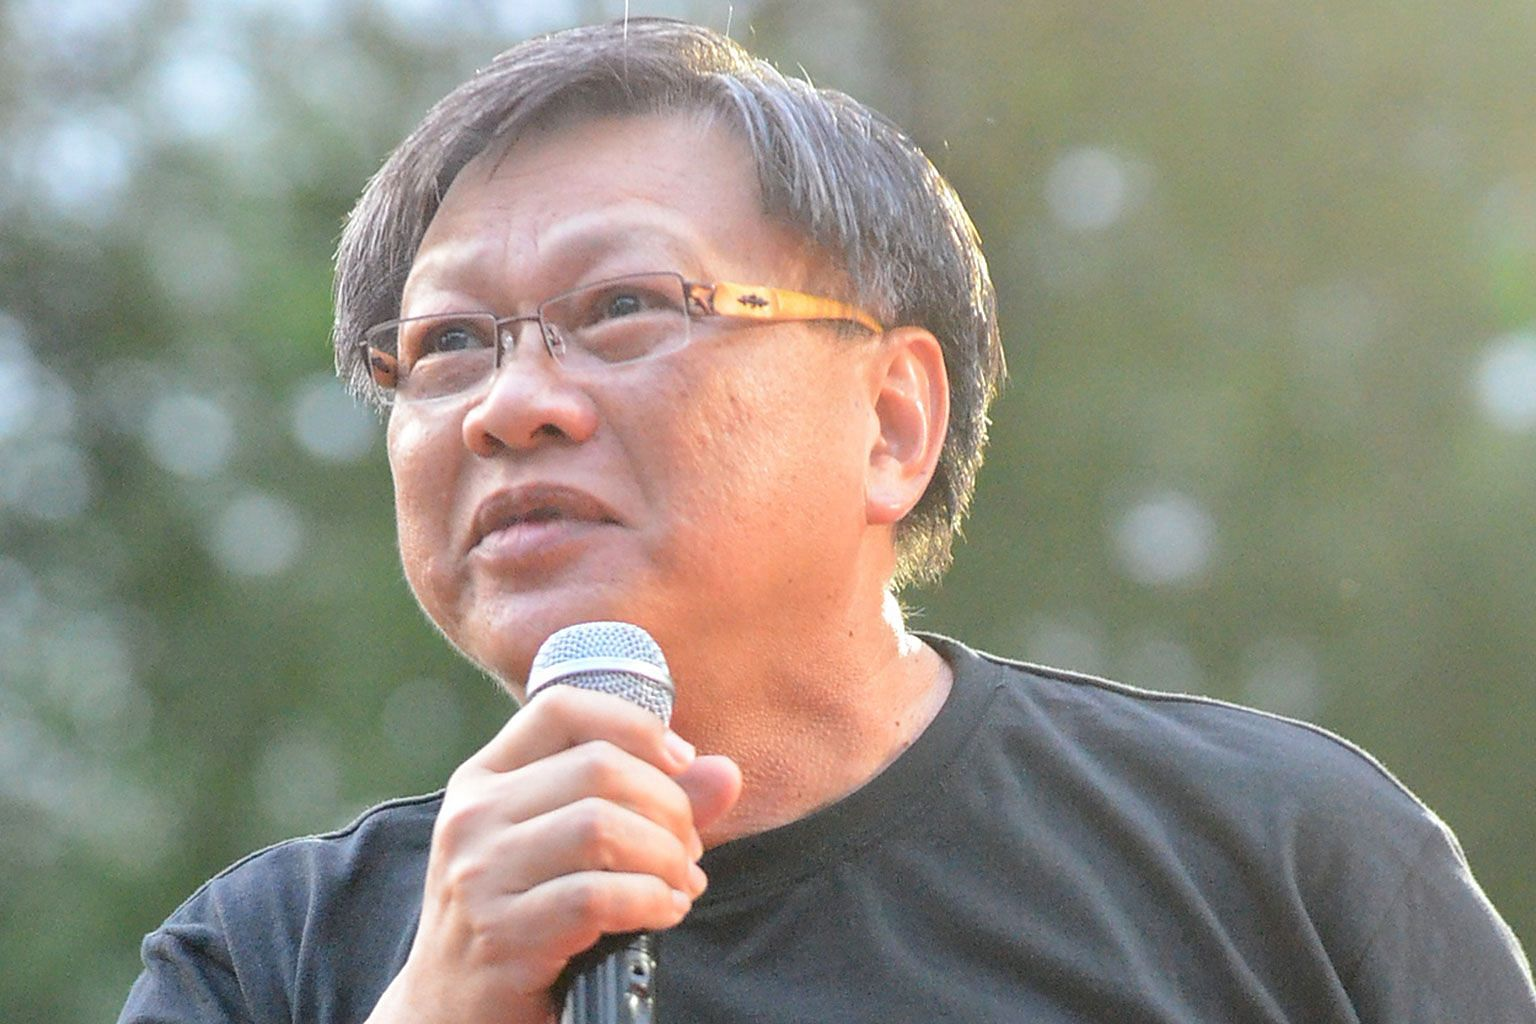 Mr Leong Sze Hian rejects allegations that he was acting maliciously and to damage Prime Minister Lee Hsien Loong.